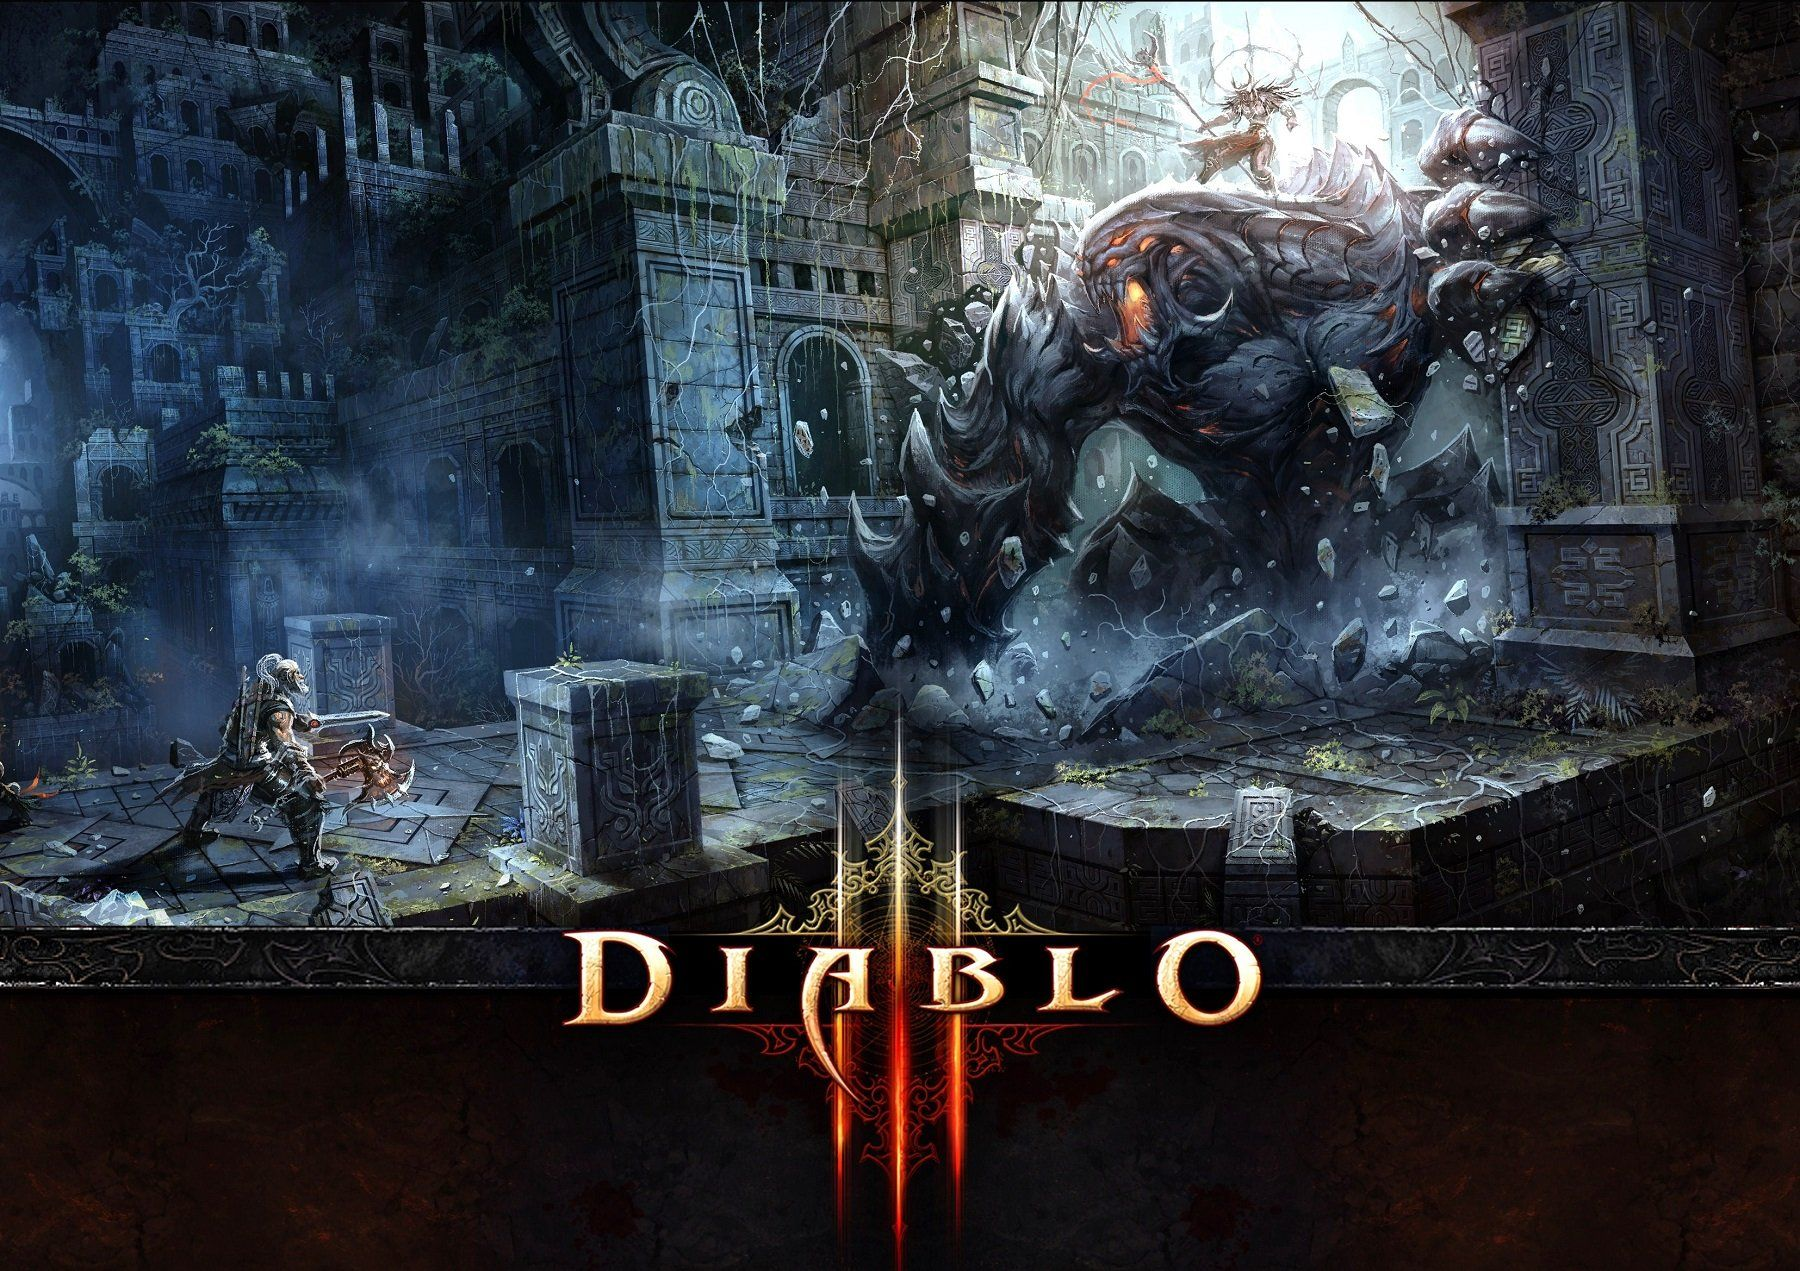 Diablo III Poster Video game posters, Art prints online